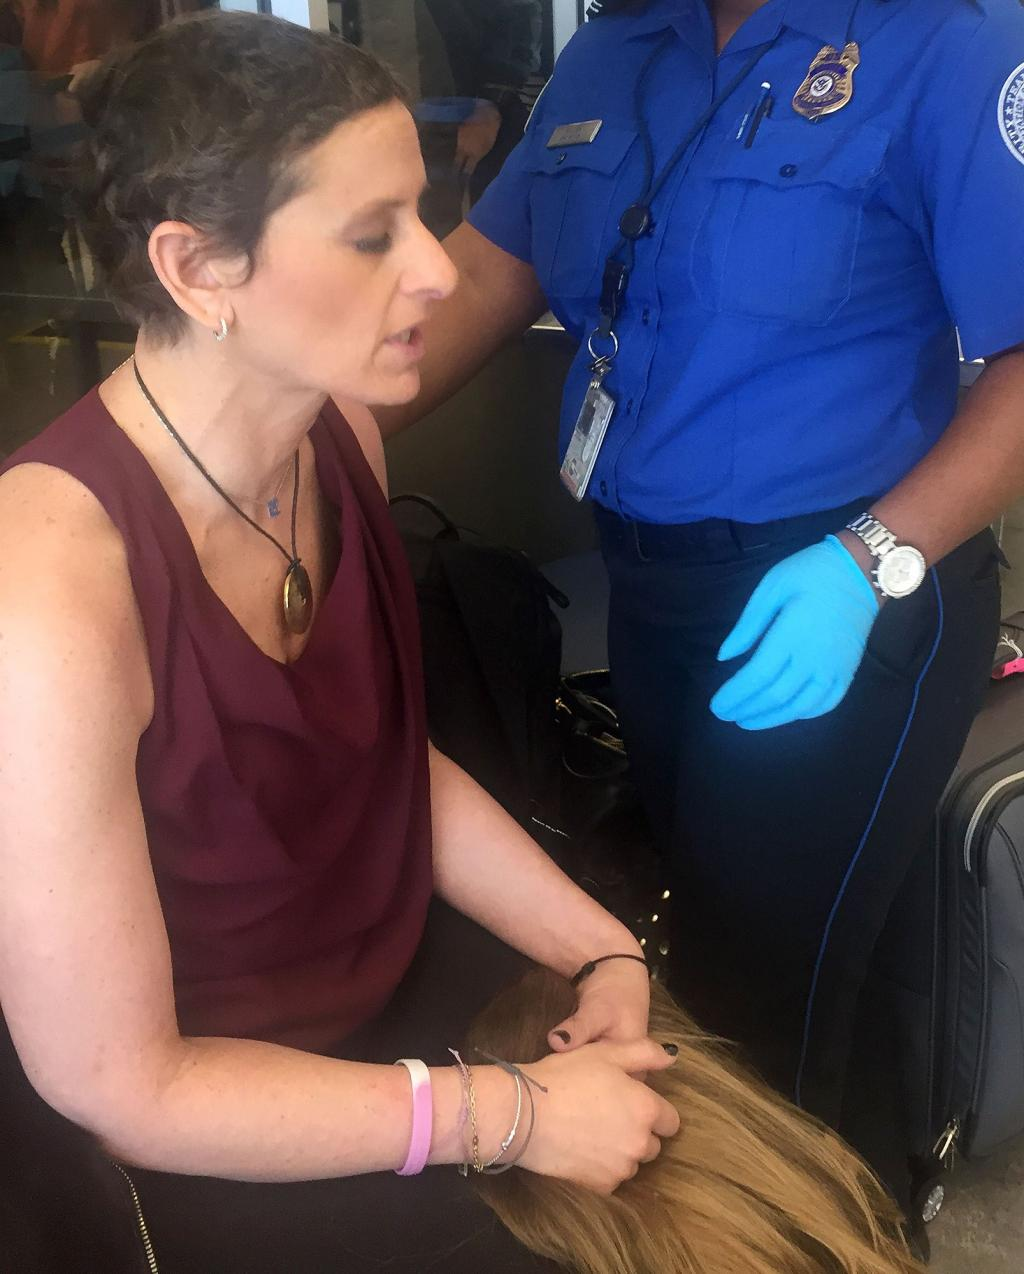 TV Host with Breast Cancer Was        Overwhelmed and Upset and Humiliated      '  By Tsa Body Search